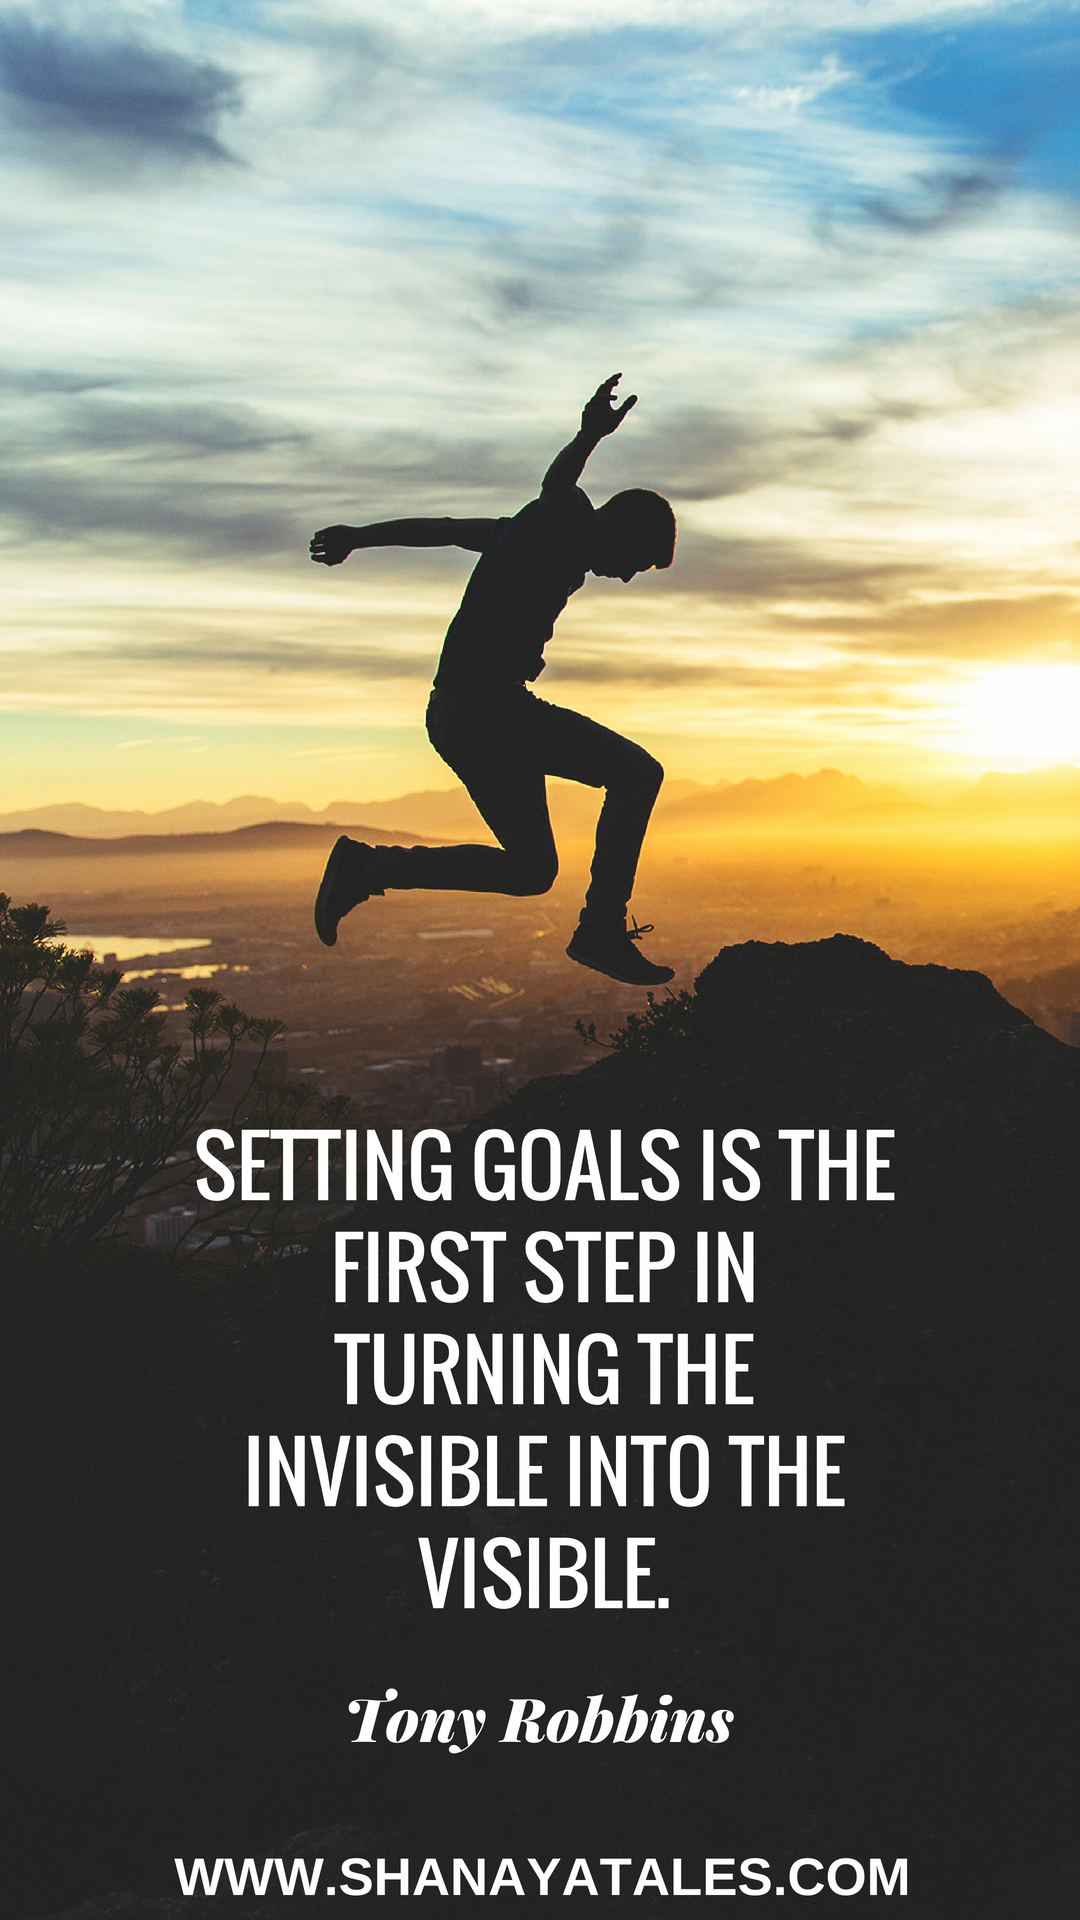 goal setting quote - setting goals is the first step in turning the invisible into the visible